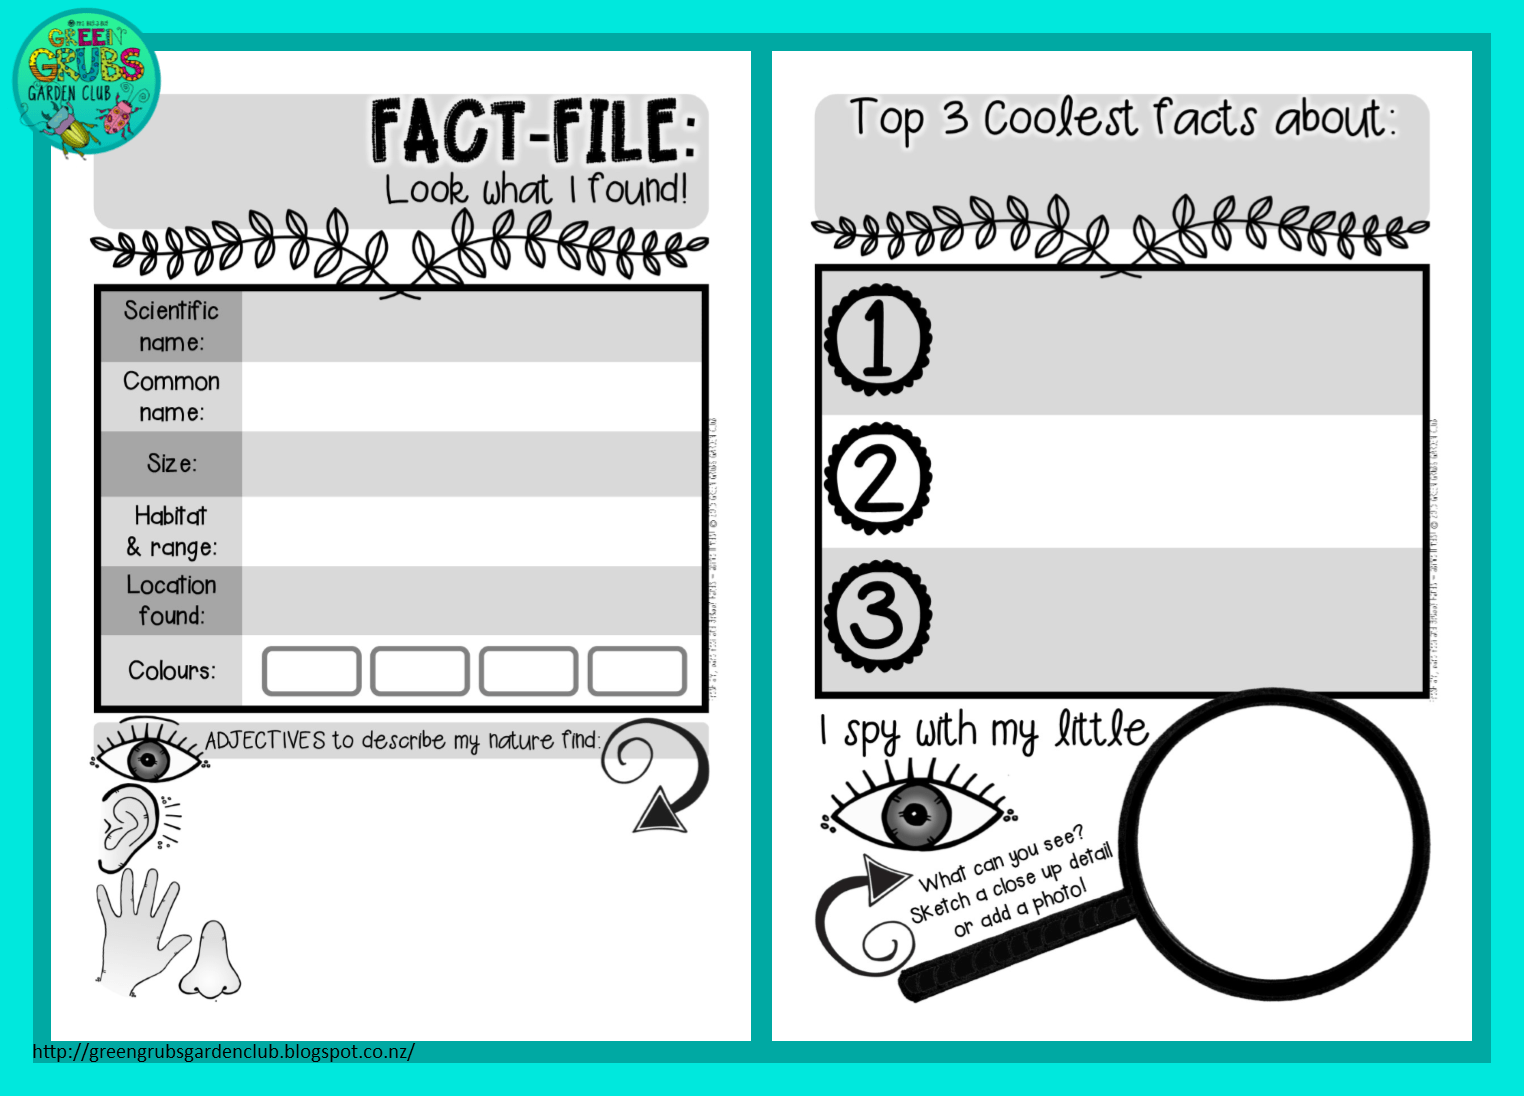 Free Printable A Fact File Template For Recording The Details Of Your Special Nature Finds